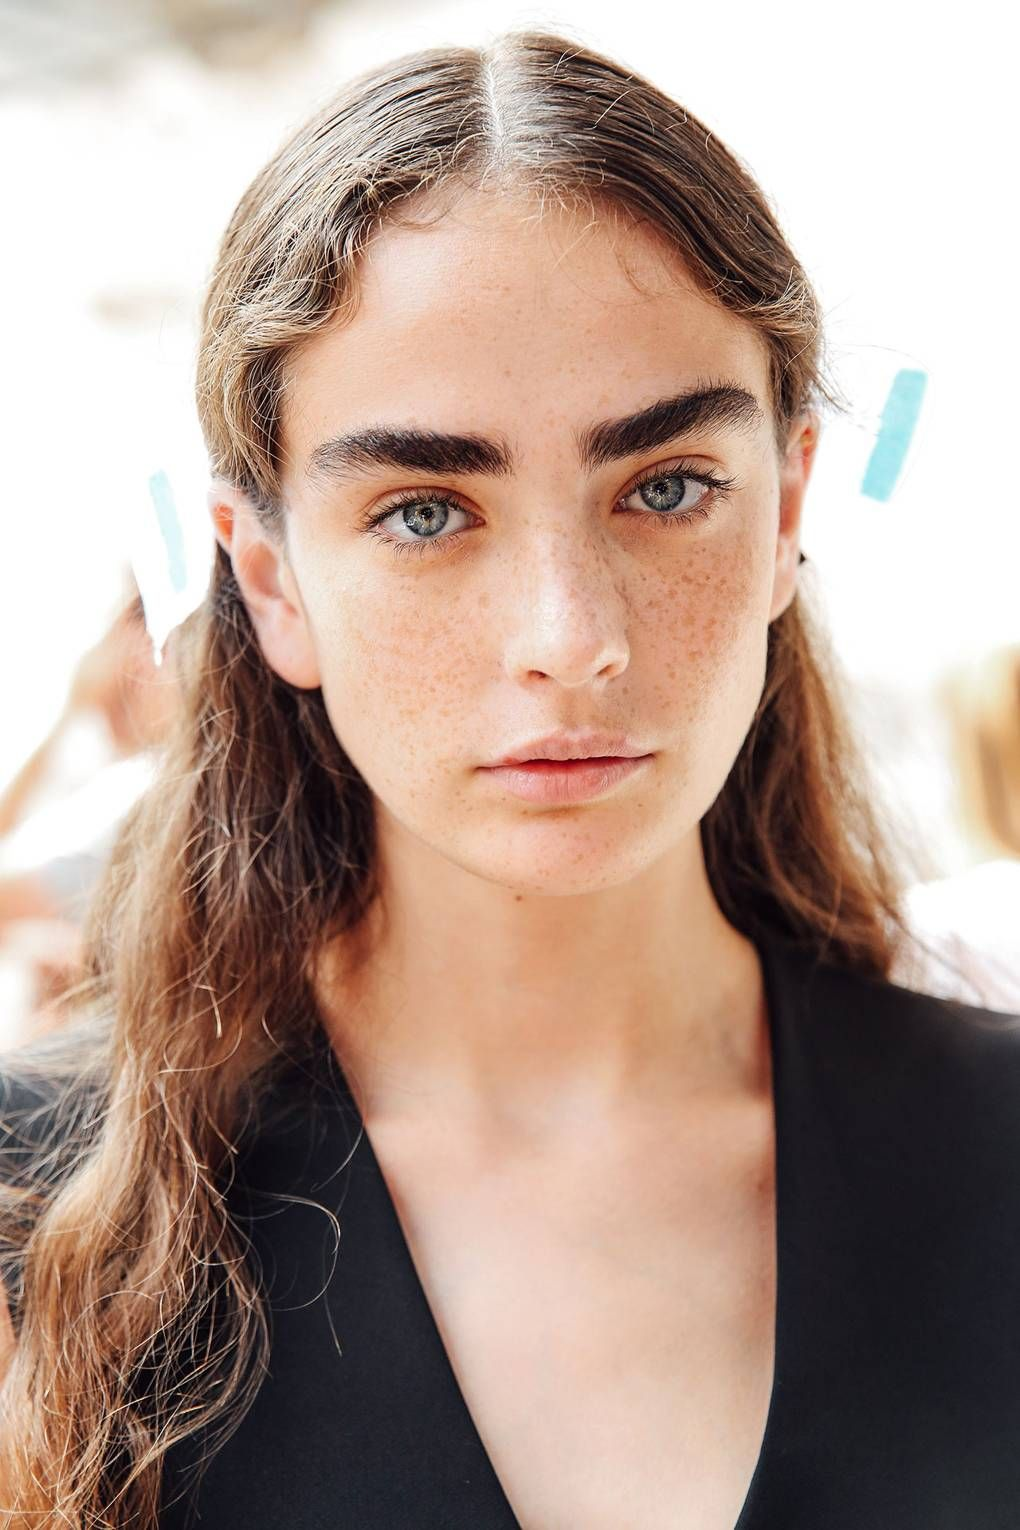 Spring Summer Makeup Trends 2019 - Year of Clean Water